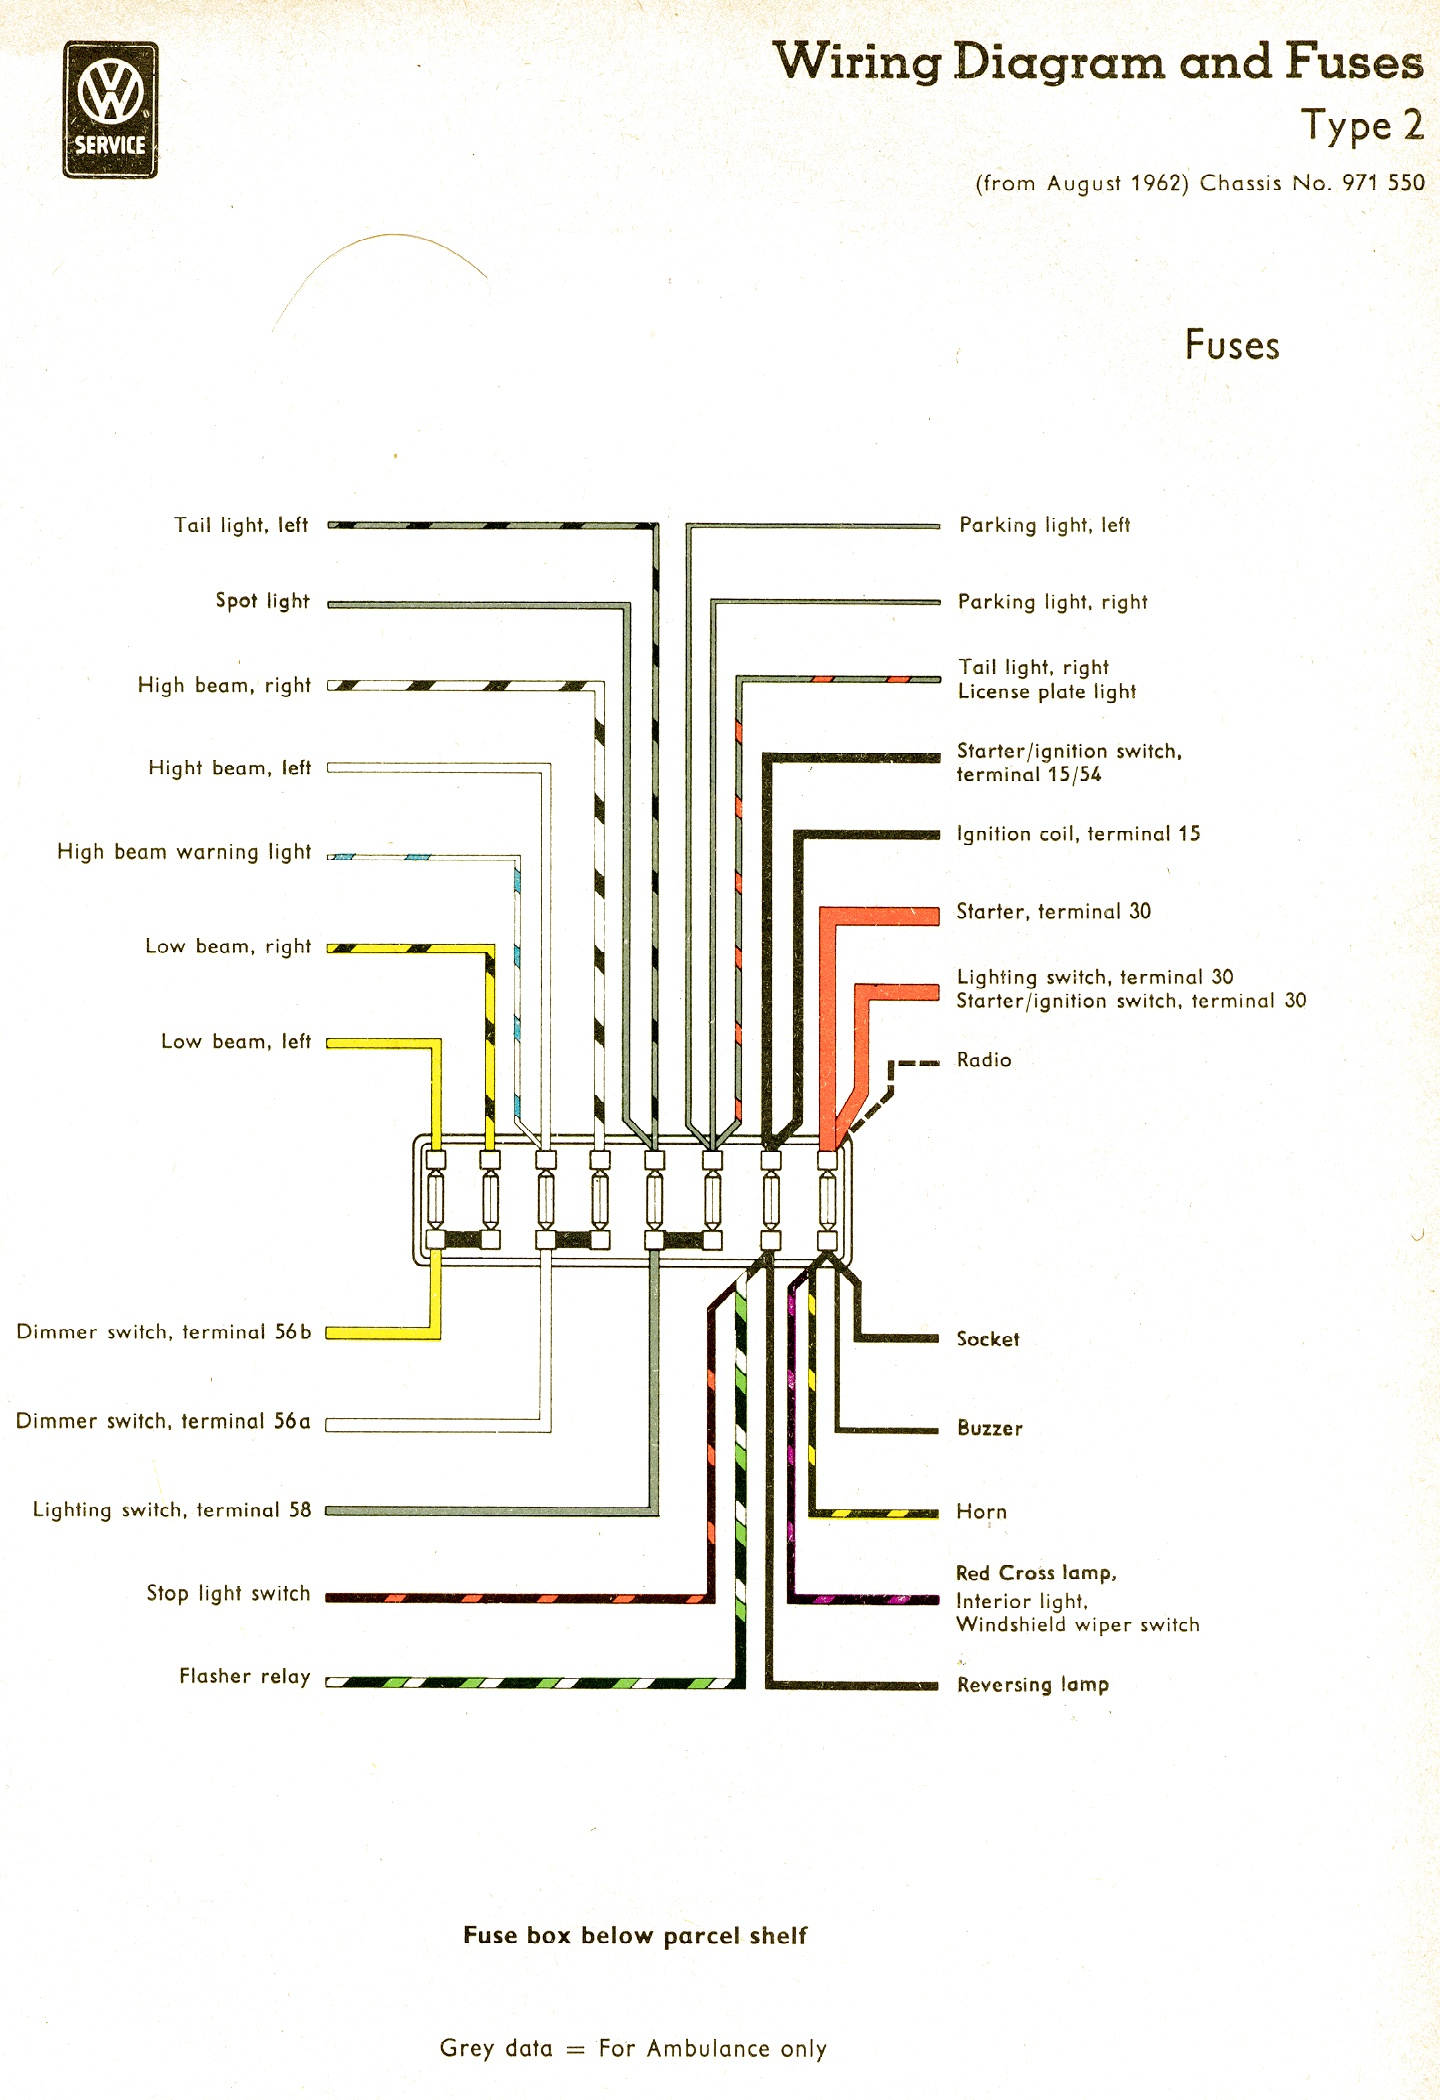 1974 beetle fuse box - wiring diagram chip-explorer-b -  chip-explorer-b.pmov2019.it  pmov2019.it